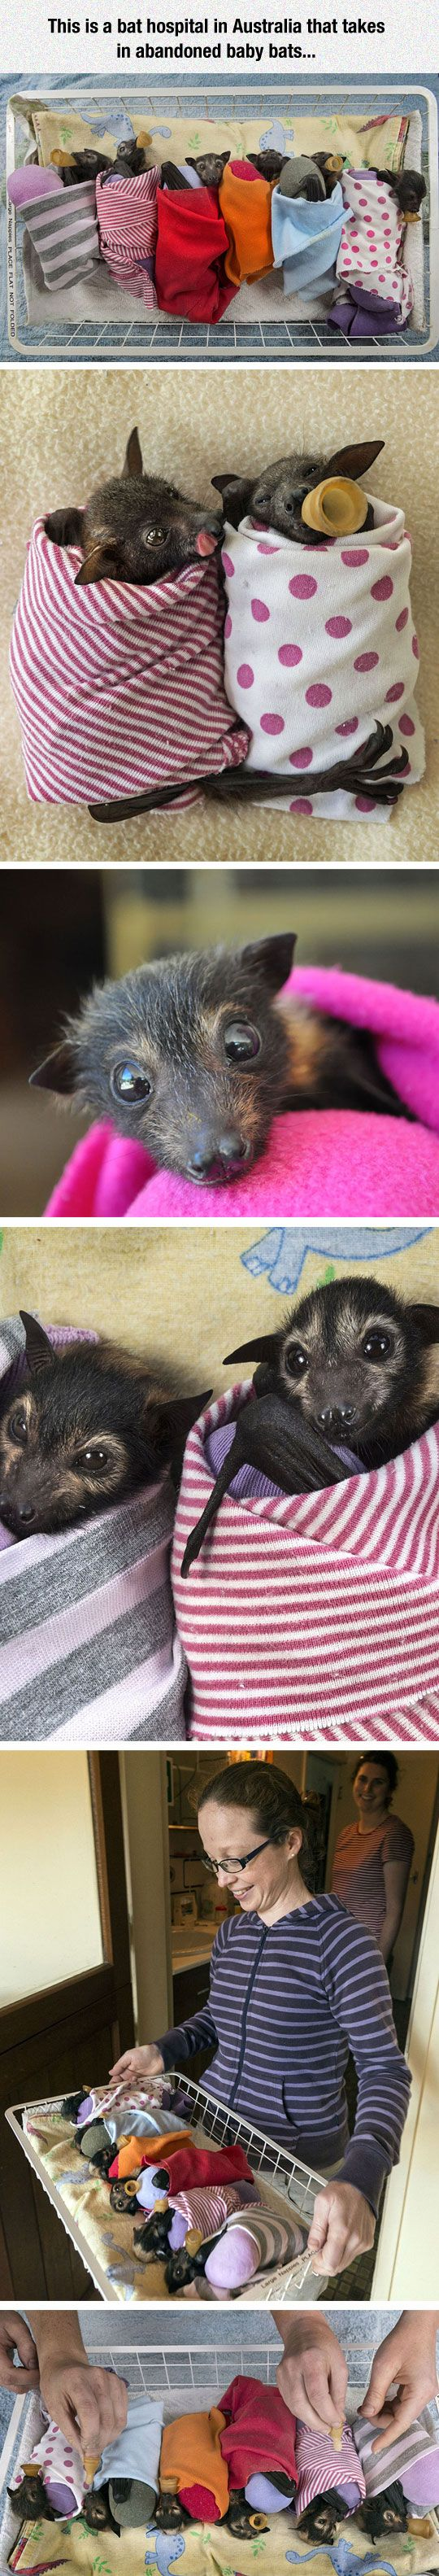 These baby bats are surprisingly cute. If you only saw their faces, they look like puppies.